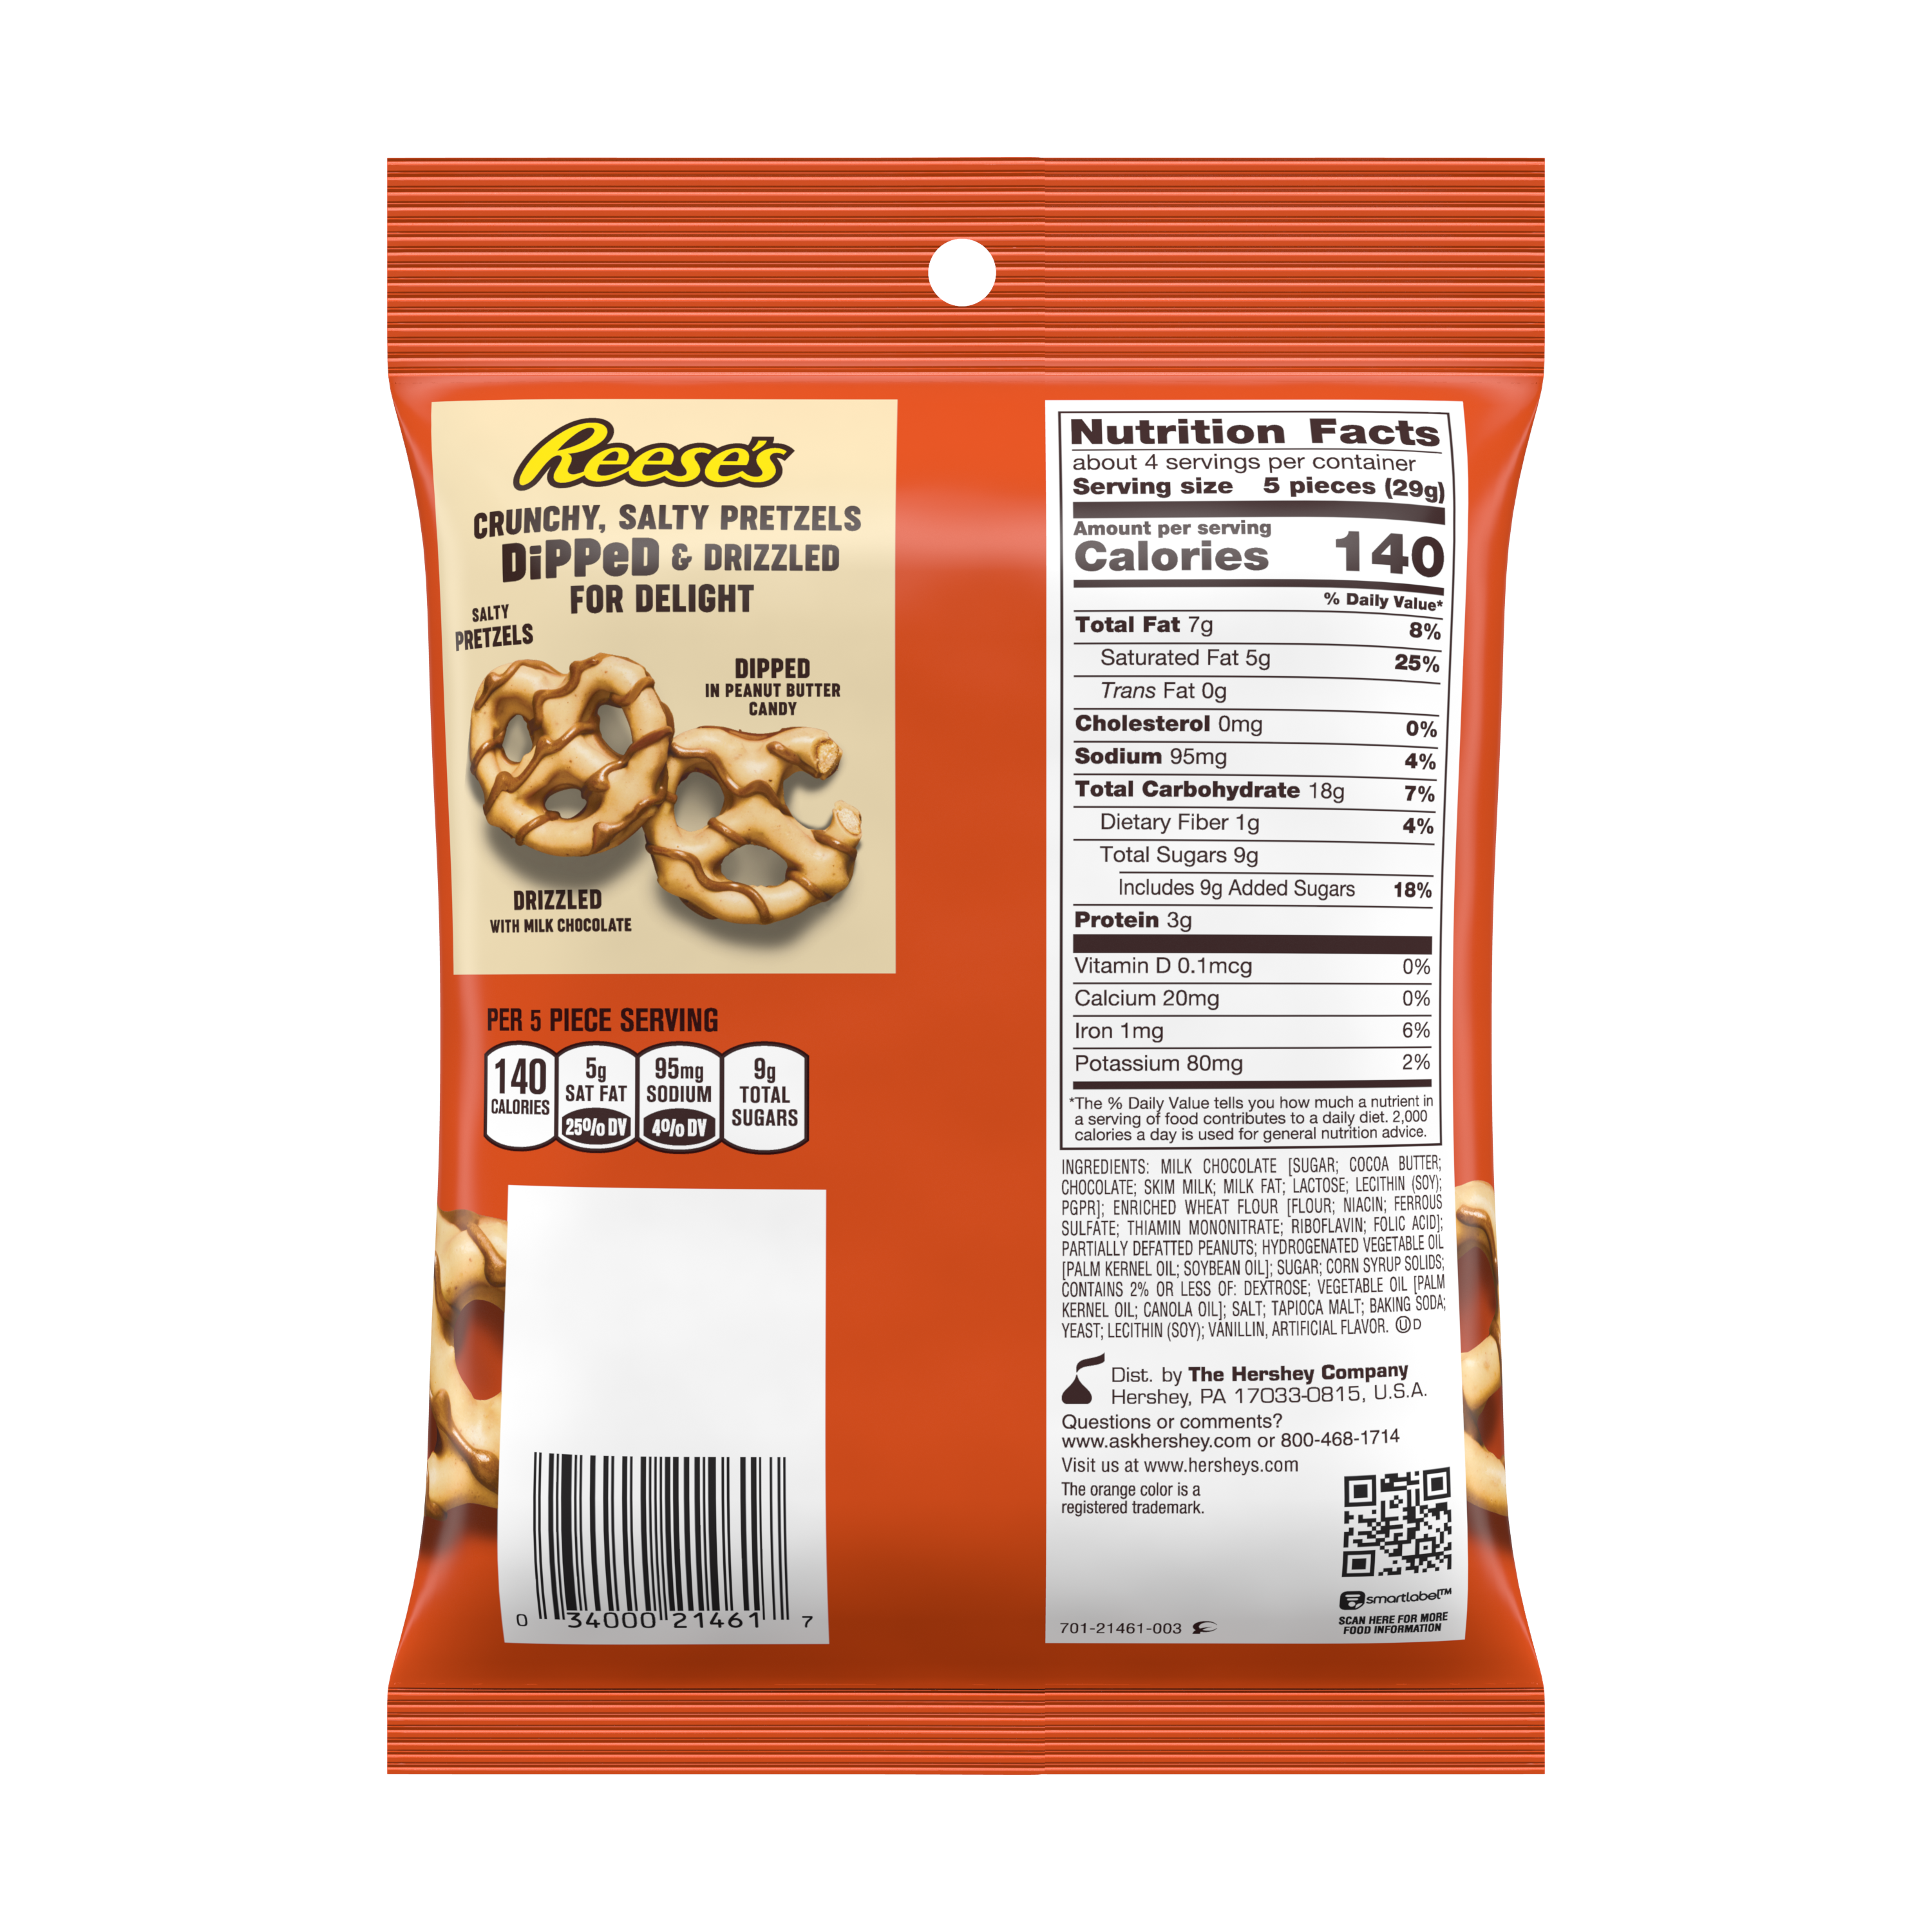 REESE'S Dipped Pretzels Milk Chocolate Peanut Butter Snack, 4.25 oz bag - Back of Package